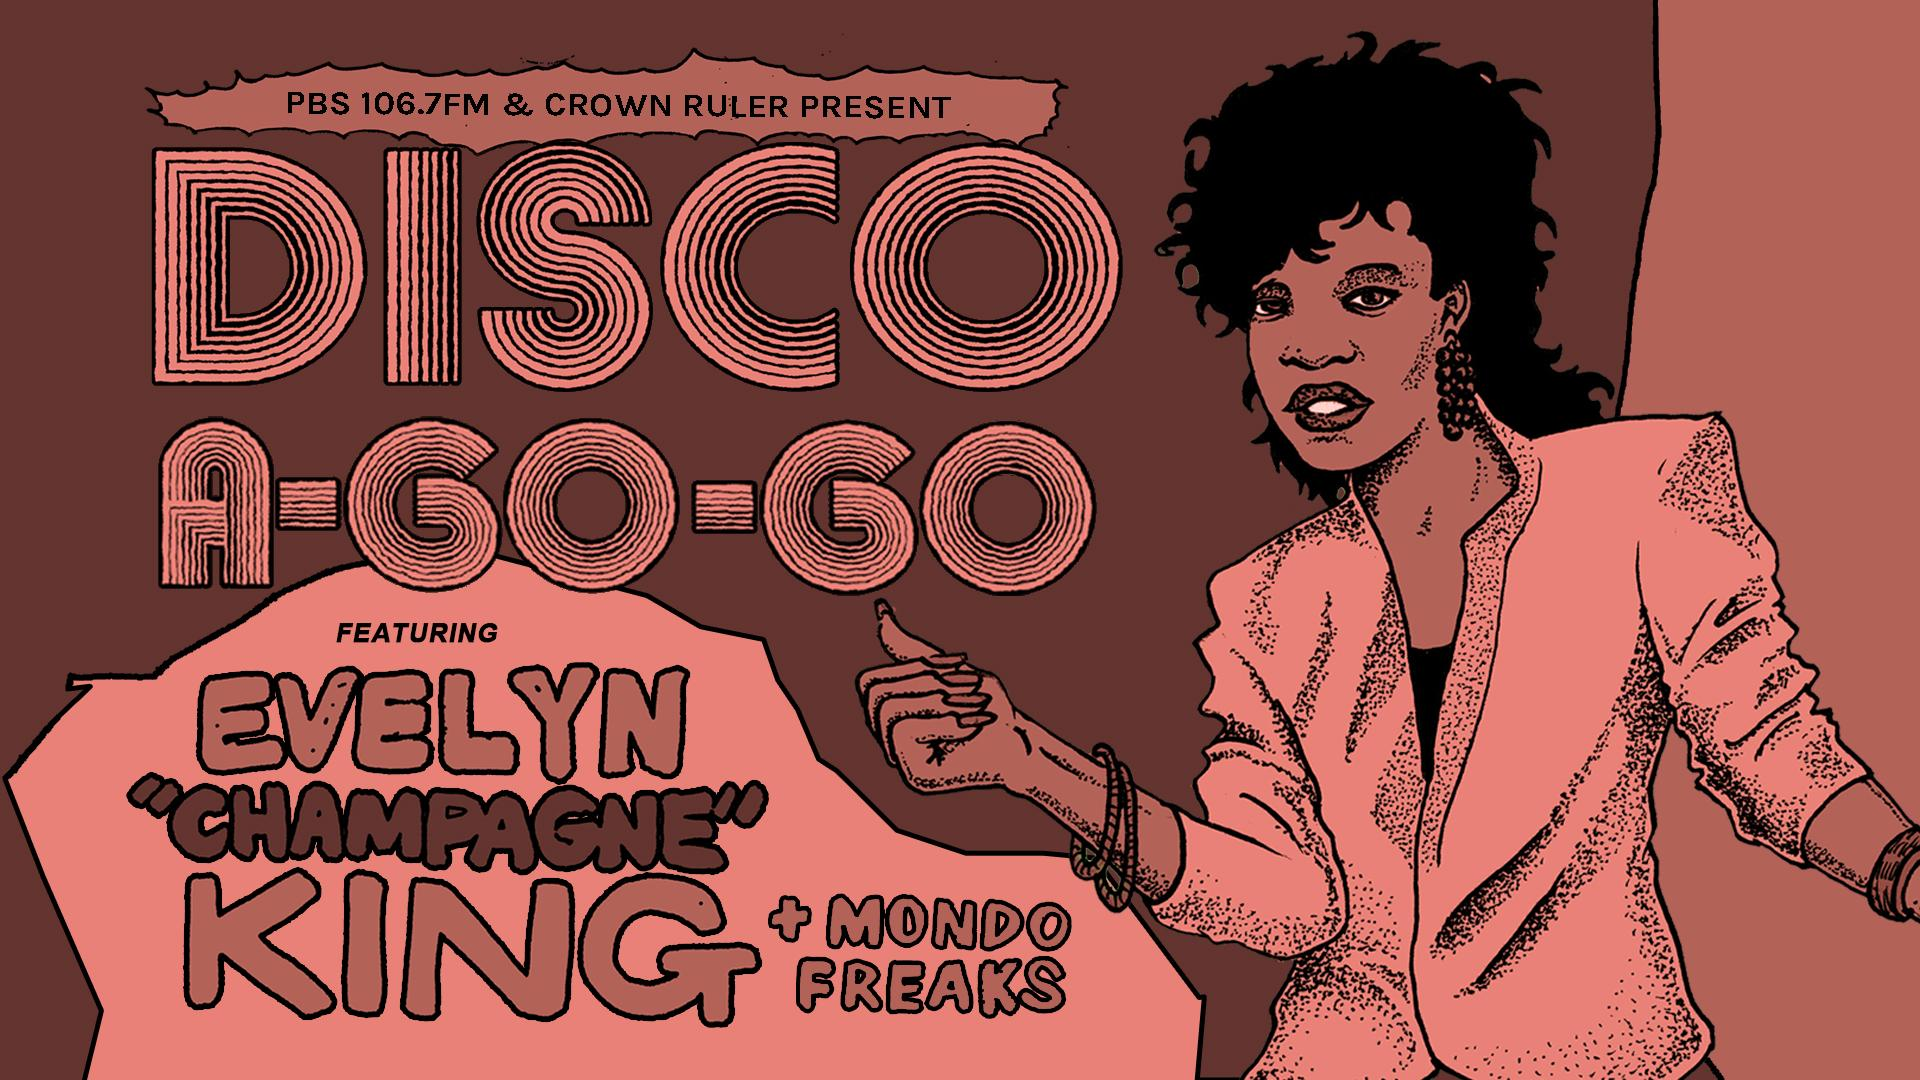 Disco A-Go-Go ft. Evelyn Champagne King with Mondo Freaks & PBS DJs